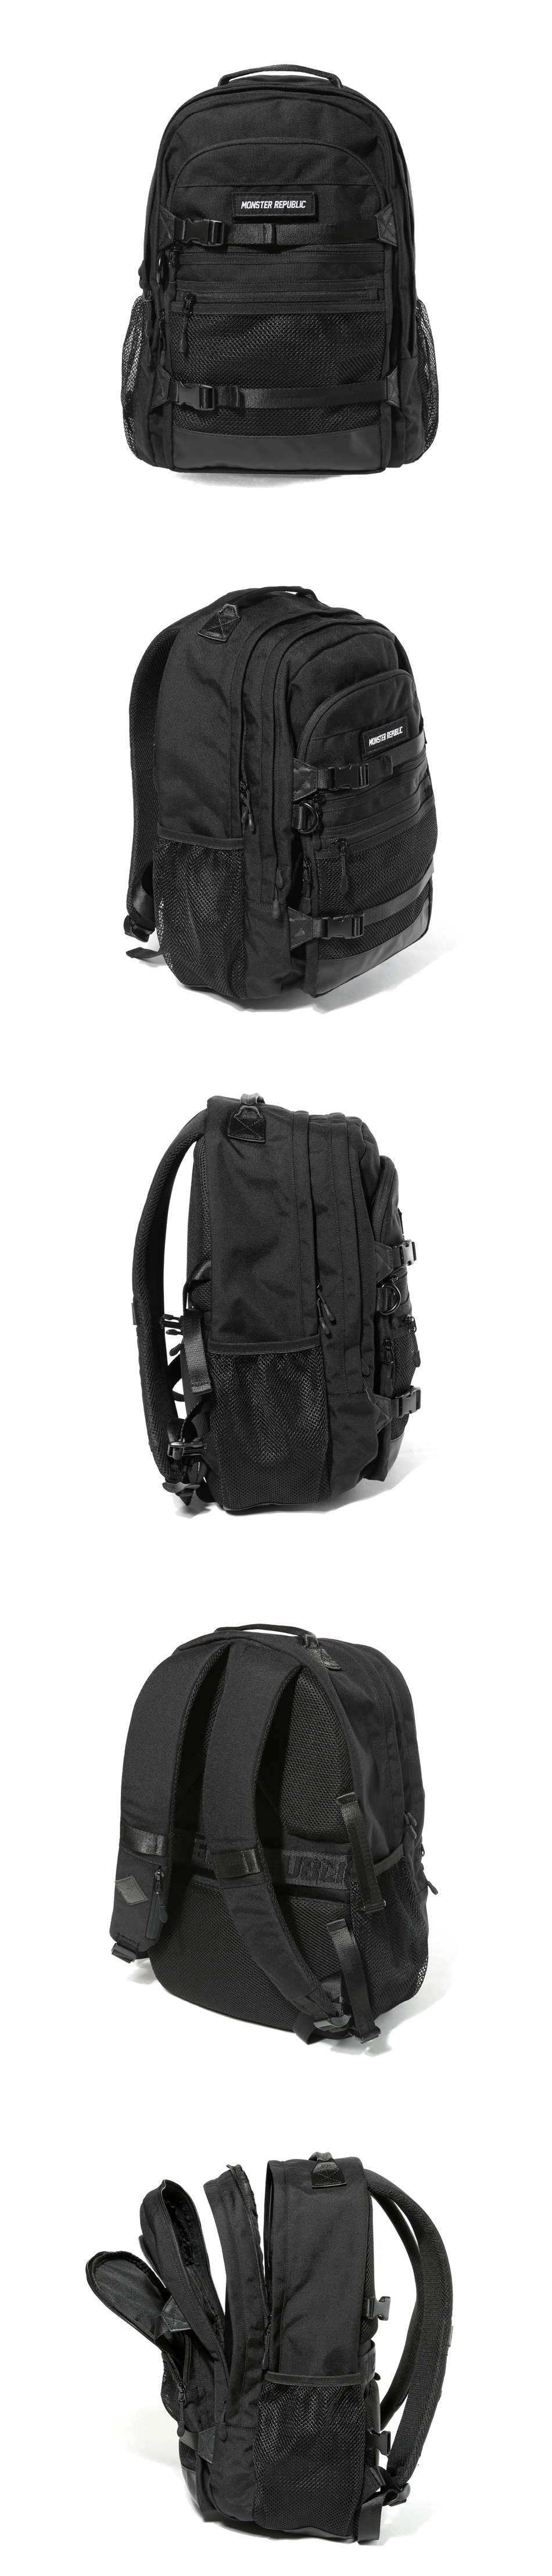 [사은품 증정] EXCEEDING 3D BACKPACK / BLACK